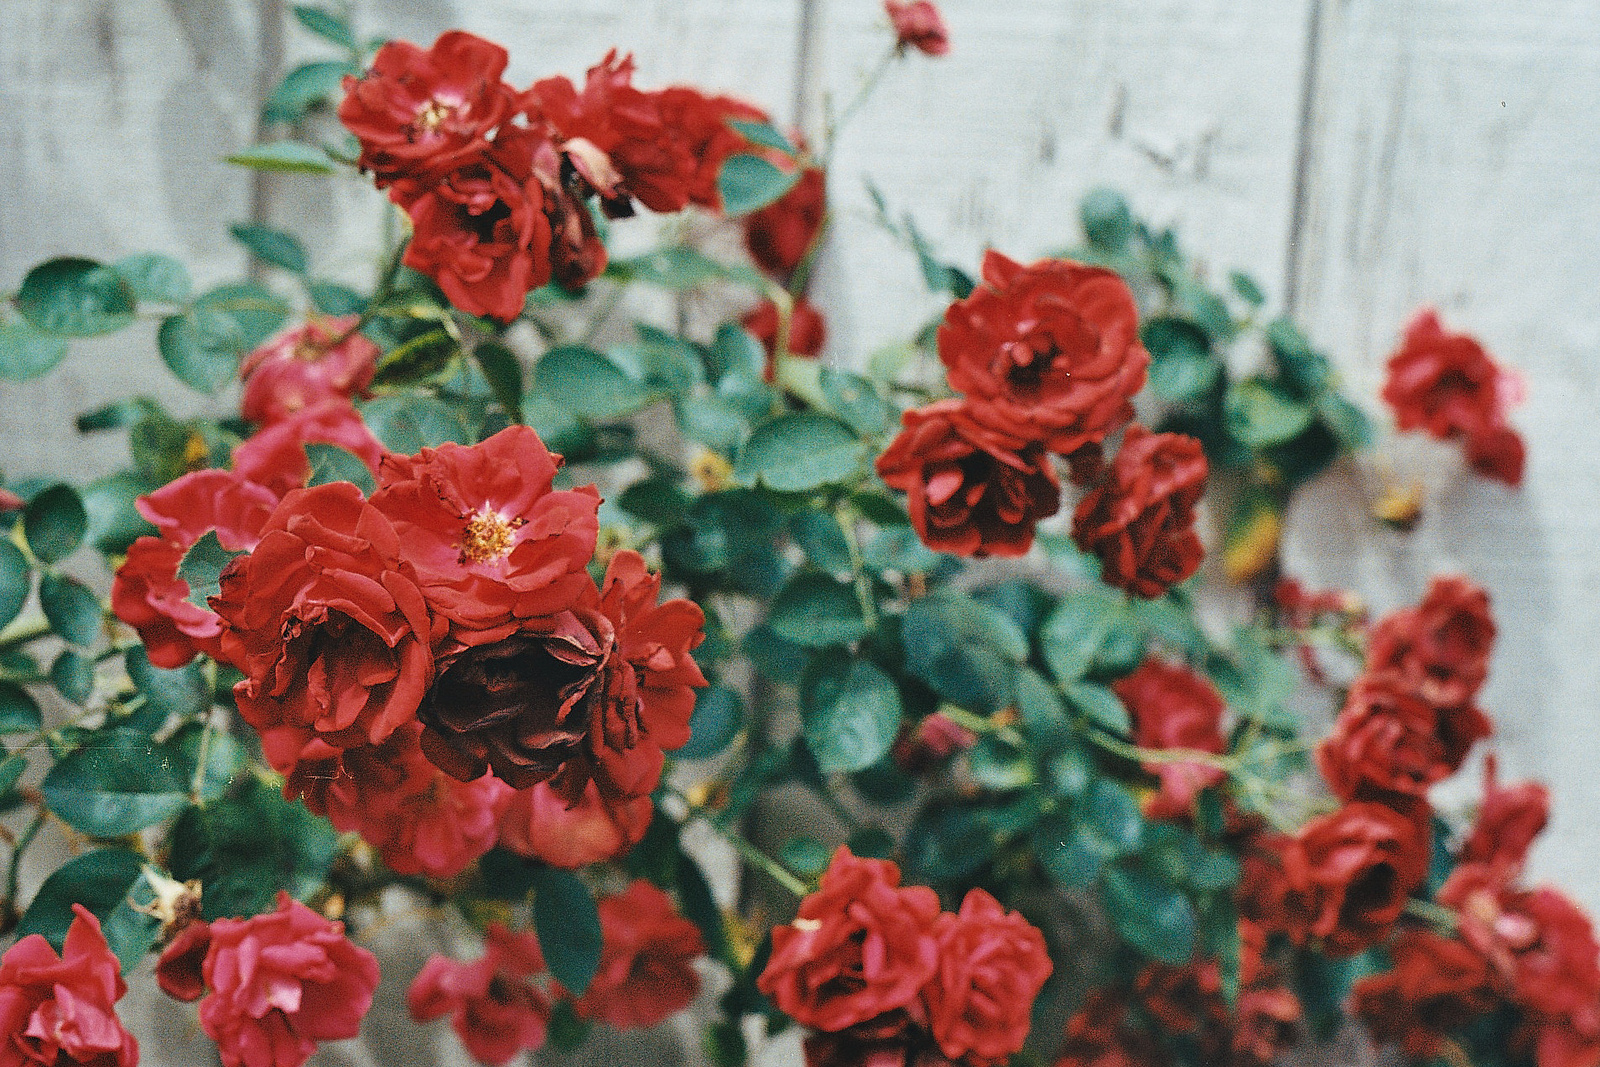 Red flowers tumblr 16 widescreen wallpaper - Red flower desktop wallpaper ...